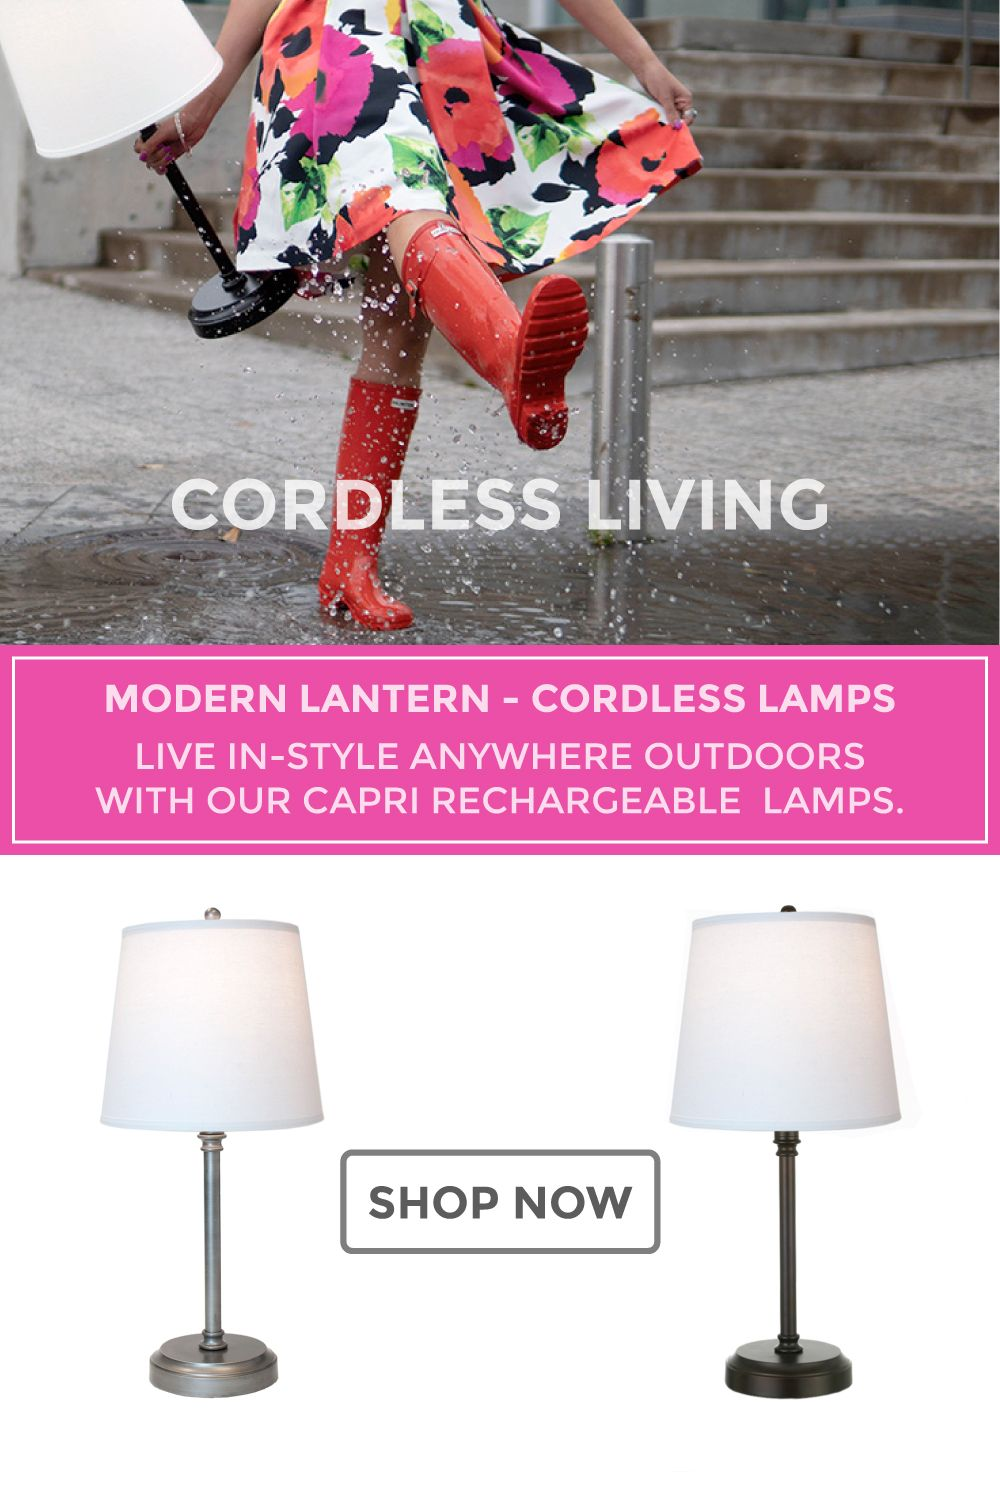 Outdoor Cordless Lamp Cordless Lamps Modern Lanterns Rechargeable Lamp